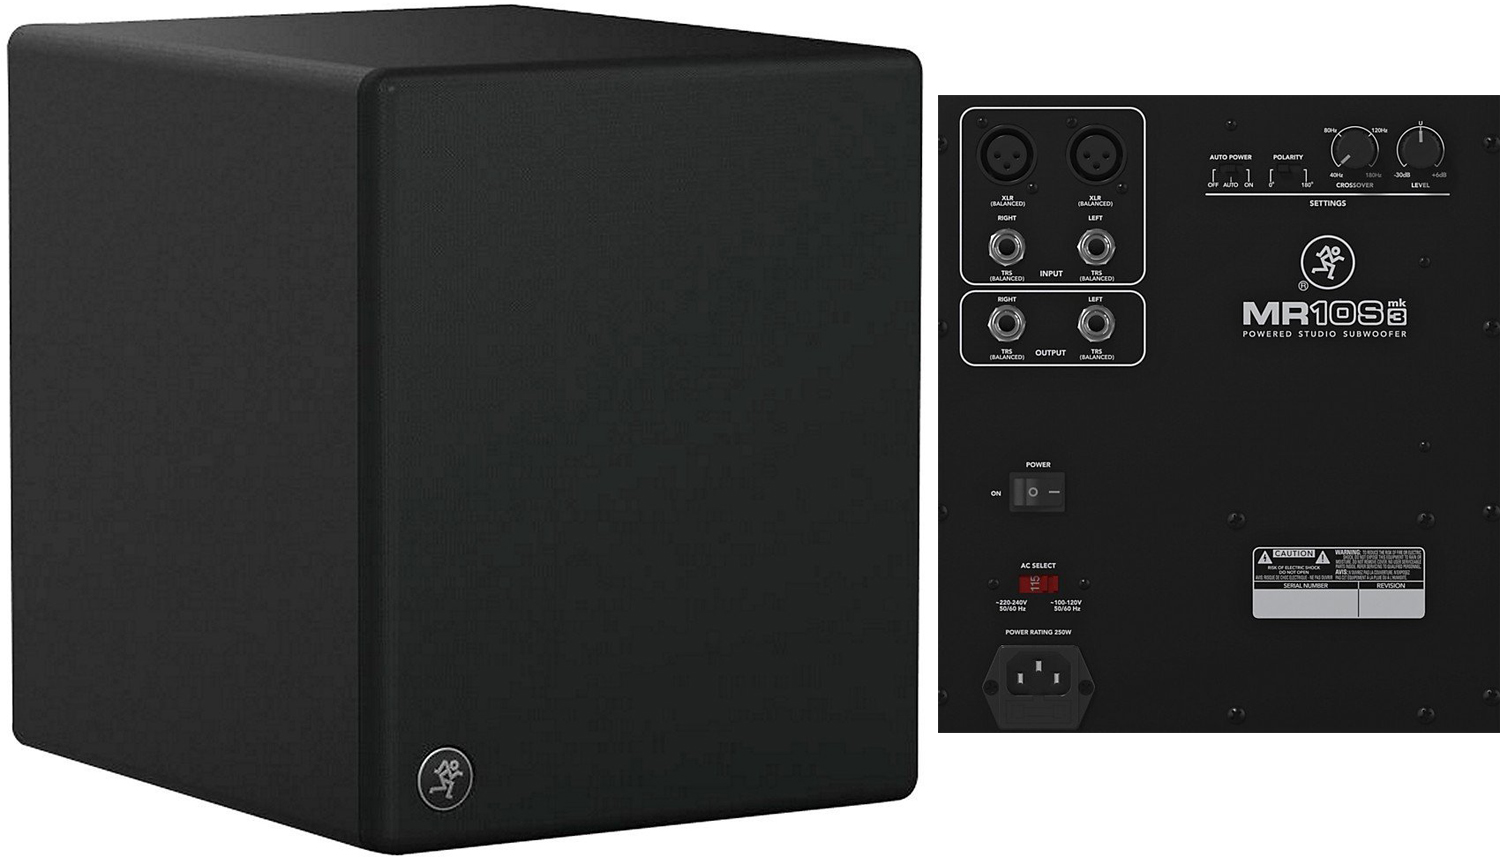 Mackie MR10Smk3 Studio Monitor Subwoofer